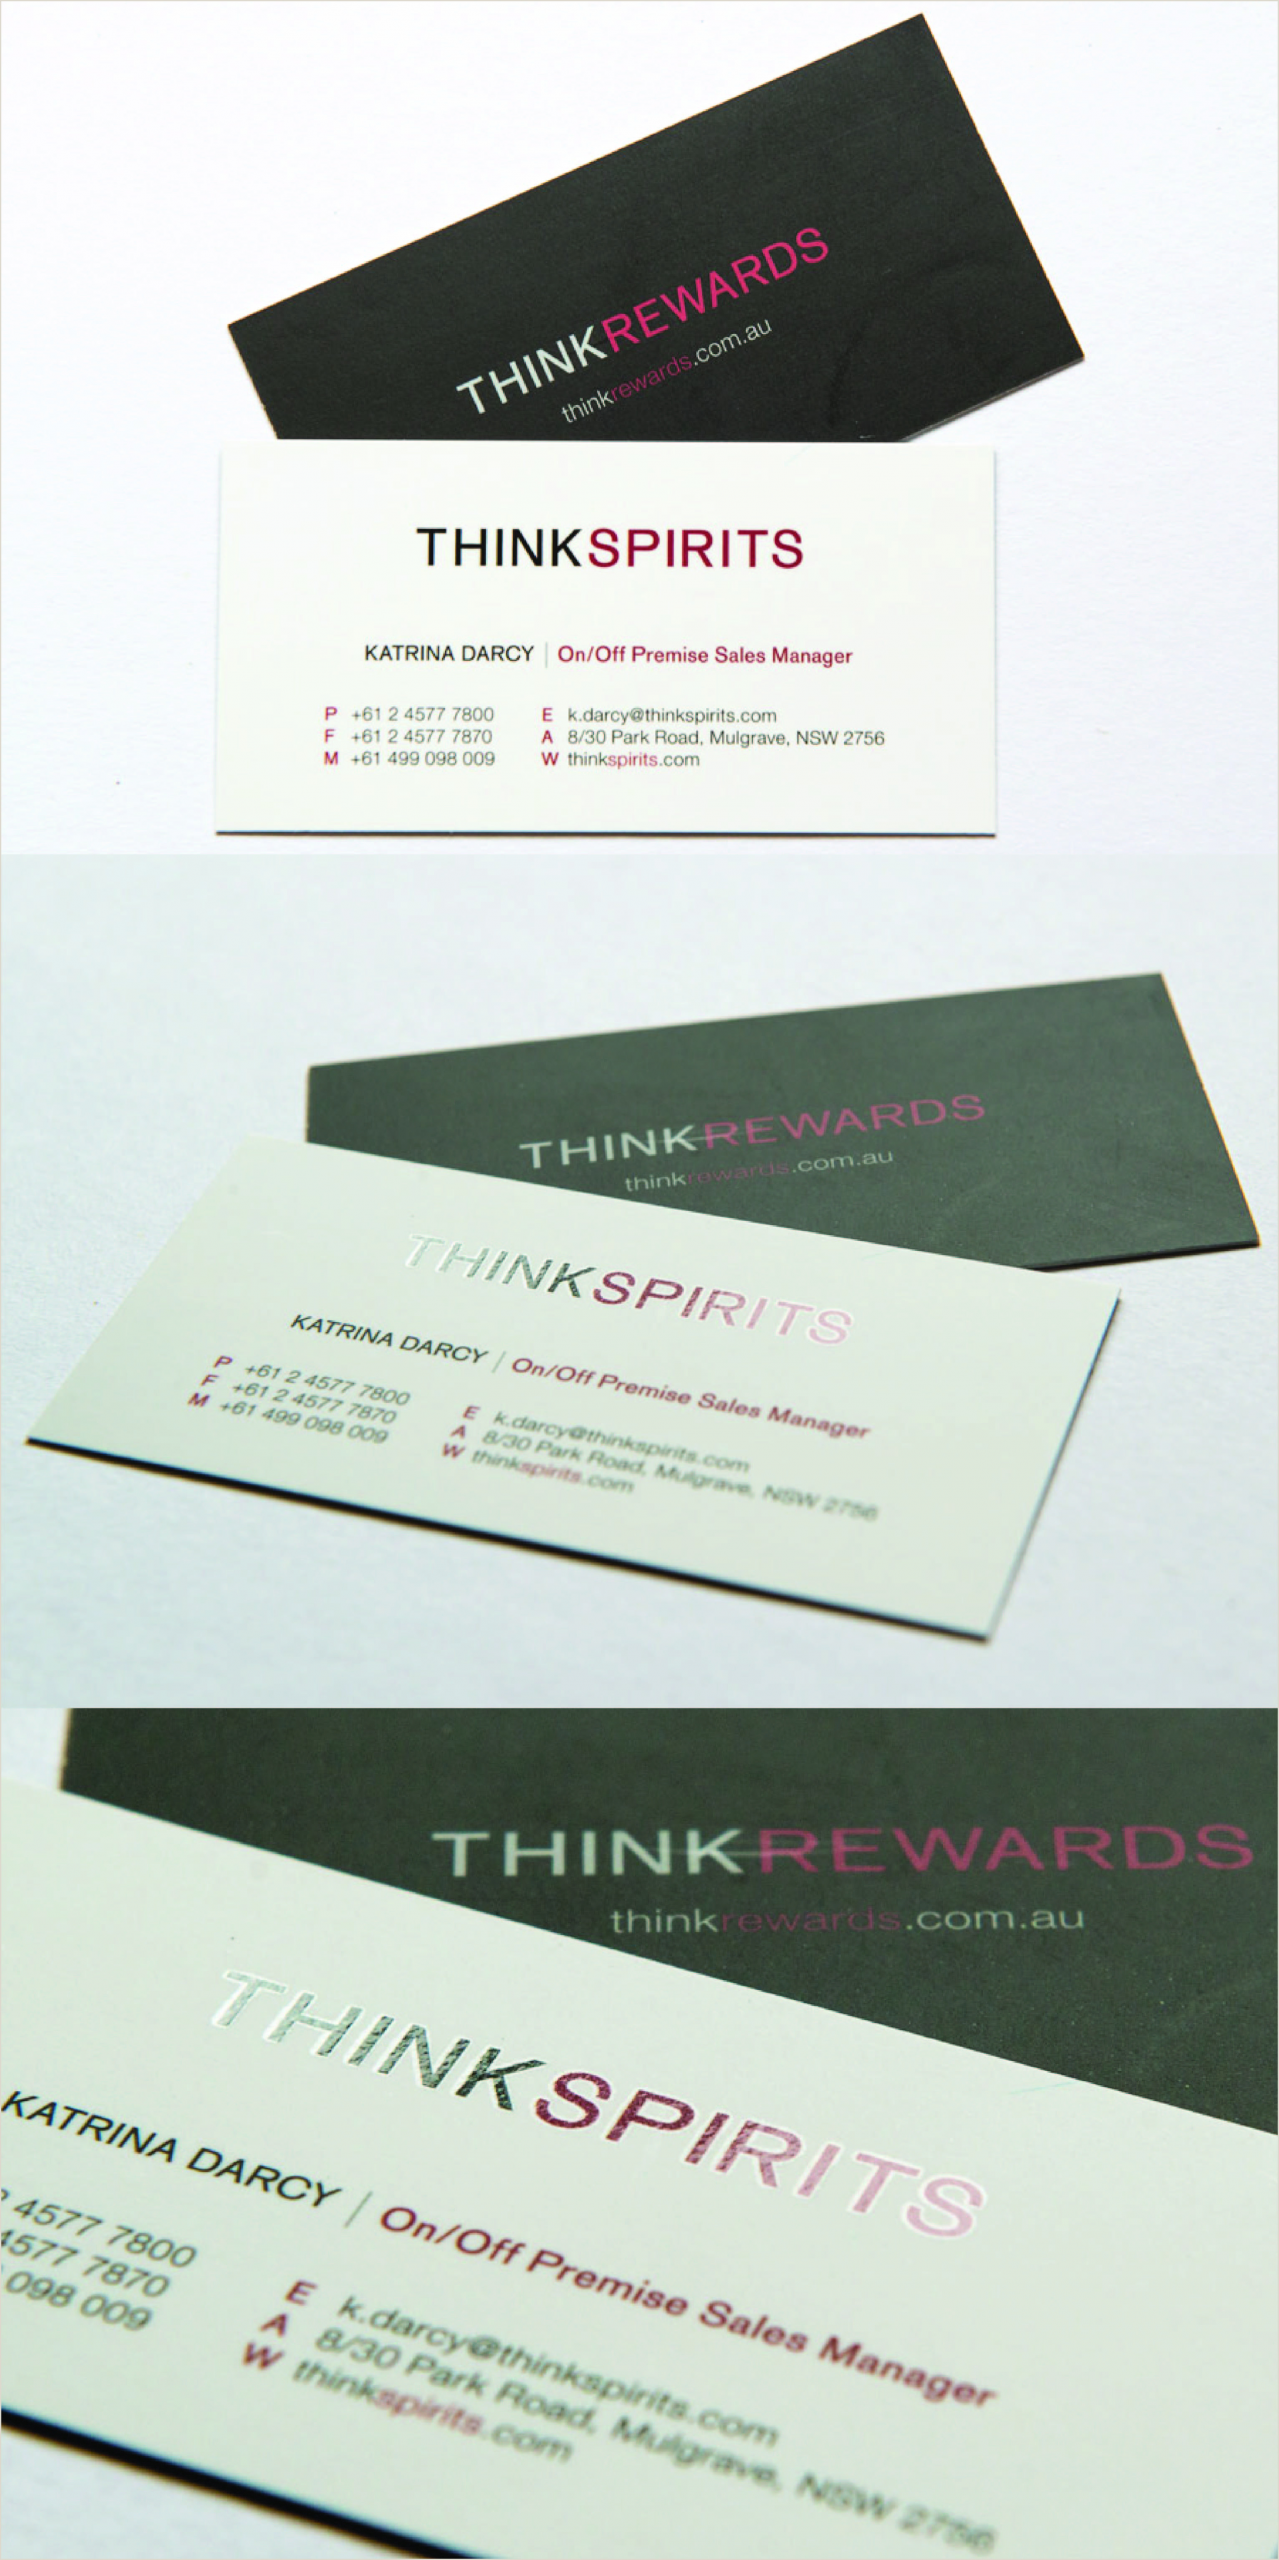 What Should Be On A Business Card The Economy Business Cards Are The Standard Choice Out Of